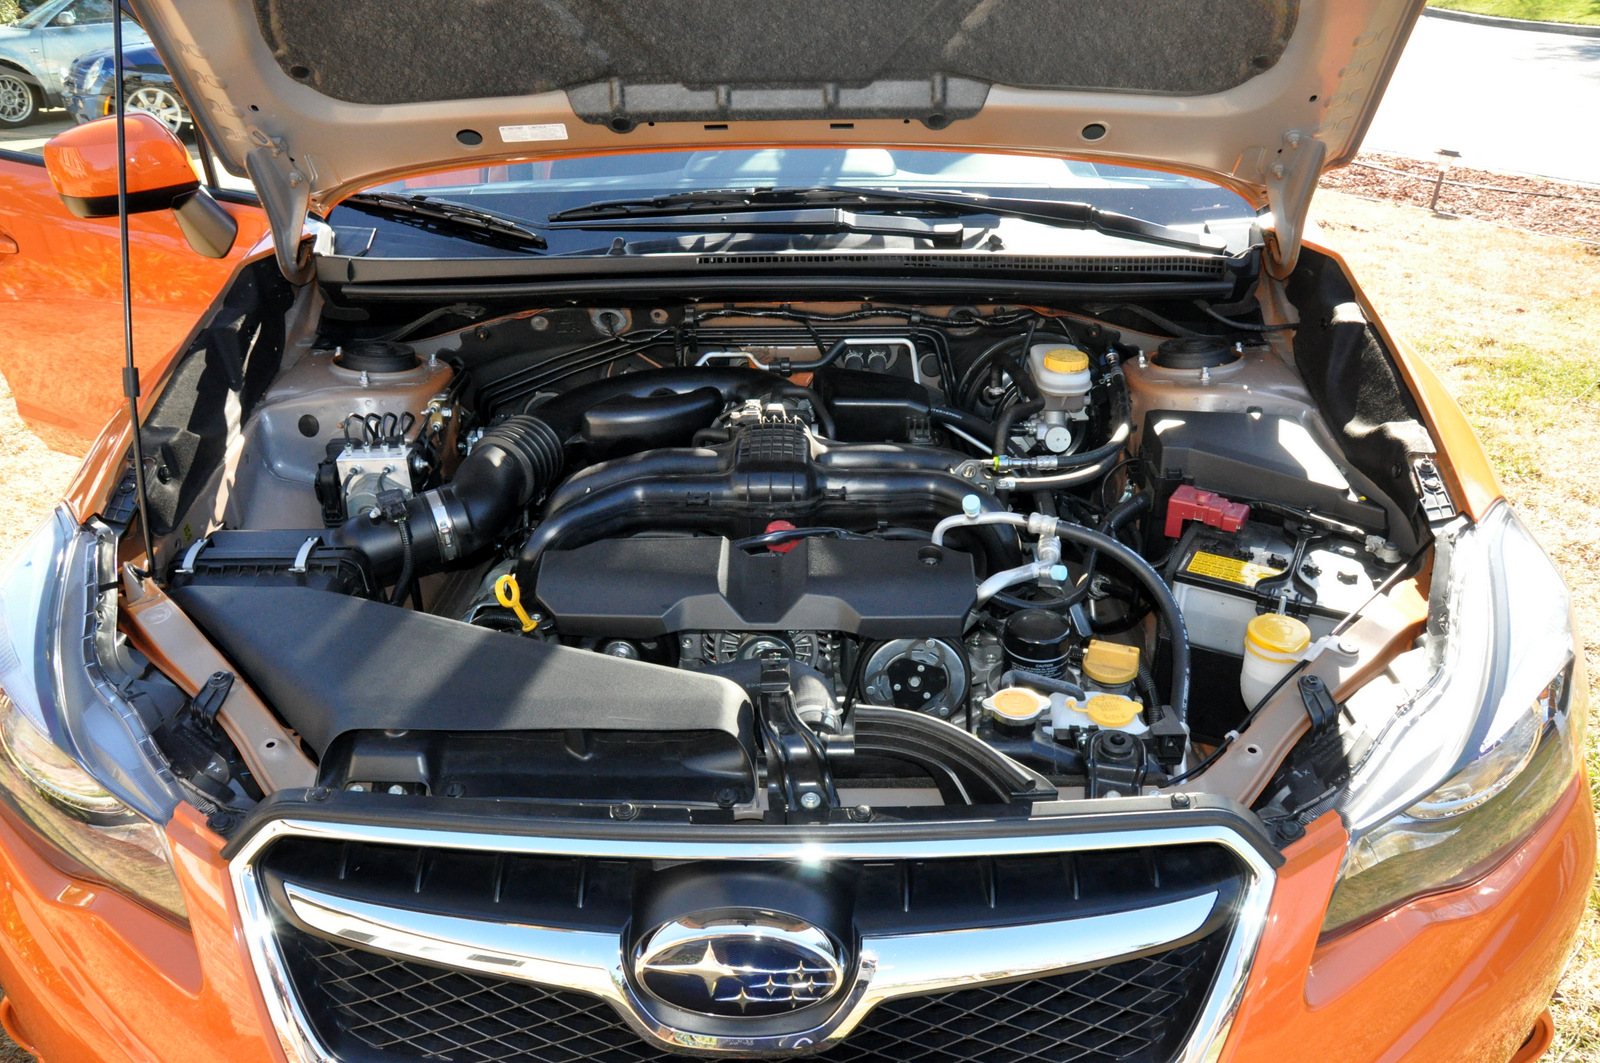 Subaru XV Crosstrek front engine bay